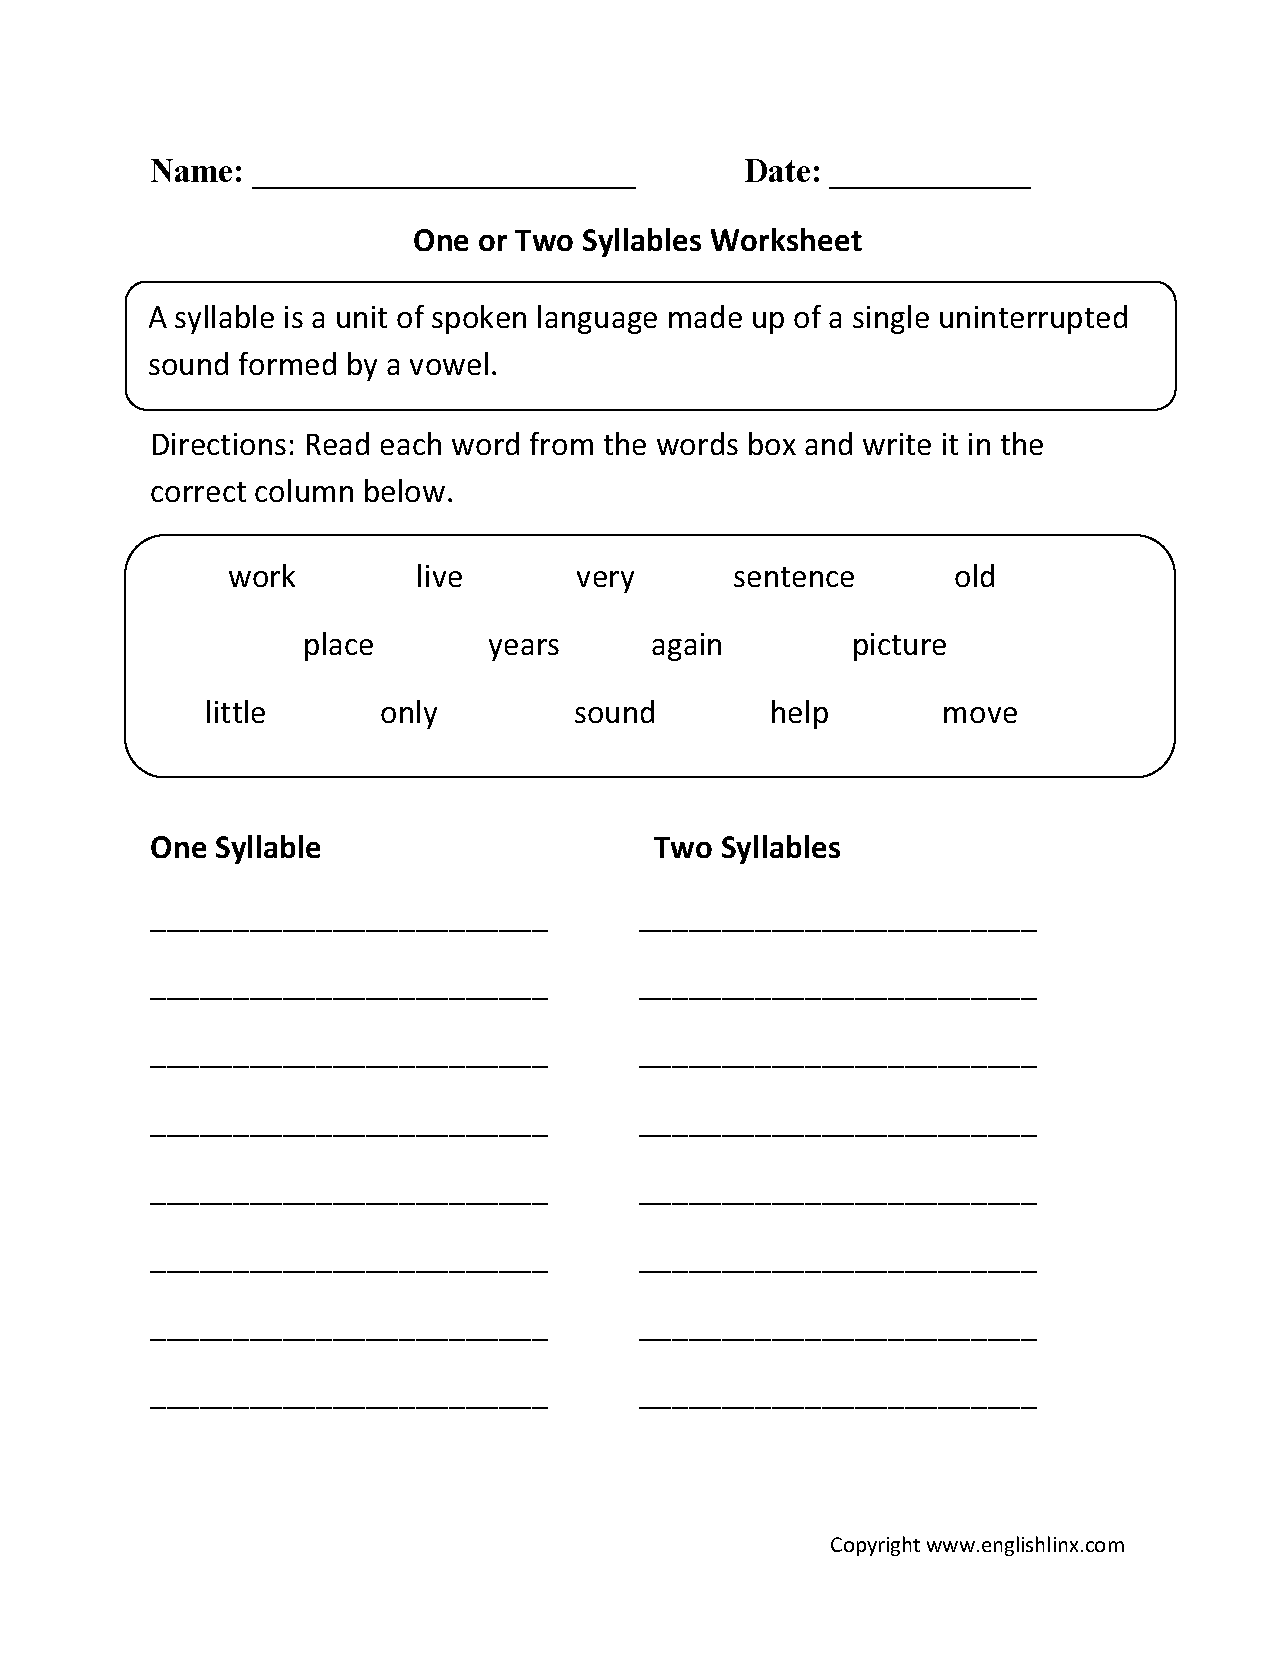 Aldiablosus  Personable Englishlinxcom  Syllables Worksheets With Exciting Syllables Worksheets With Appealing Letter R Worksheet Also Plural Possessive Nouns Worksheet In Addition Printable Art Worksheets For Kids And Math Facts Worksheets Nd Grade As Well As Division Worksheets For Rd Grade Additionally Middle School Worksheets Free From Englishlinxcom With Aldiablosus  Exciting Englishlinxcom  Syllables Worksheets With Appealing Syllables Worksheets And Personable Letter R Worksheet Also Plural Possessive Nouns Worksheet In Addition Printable Art Worksheets For Kids From Englishlinxcom